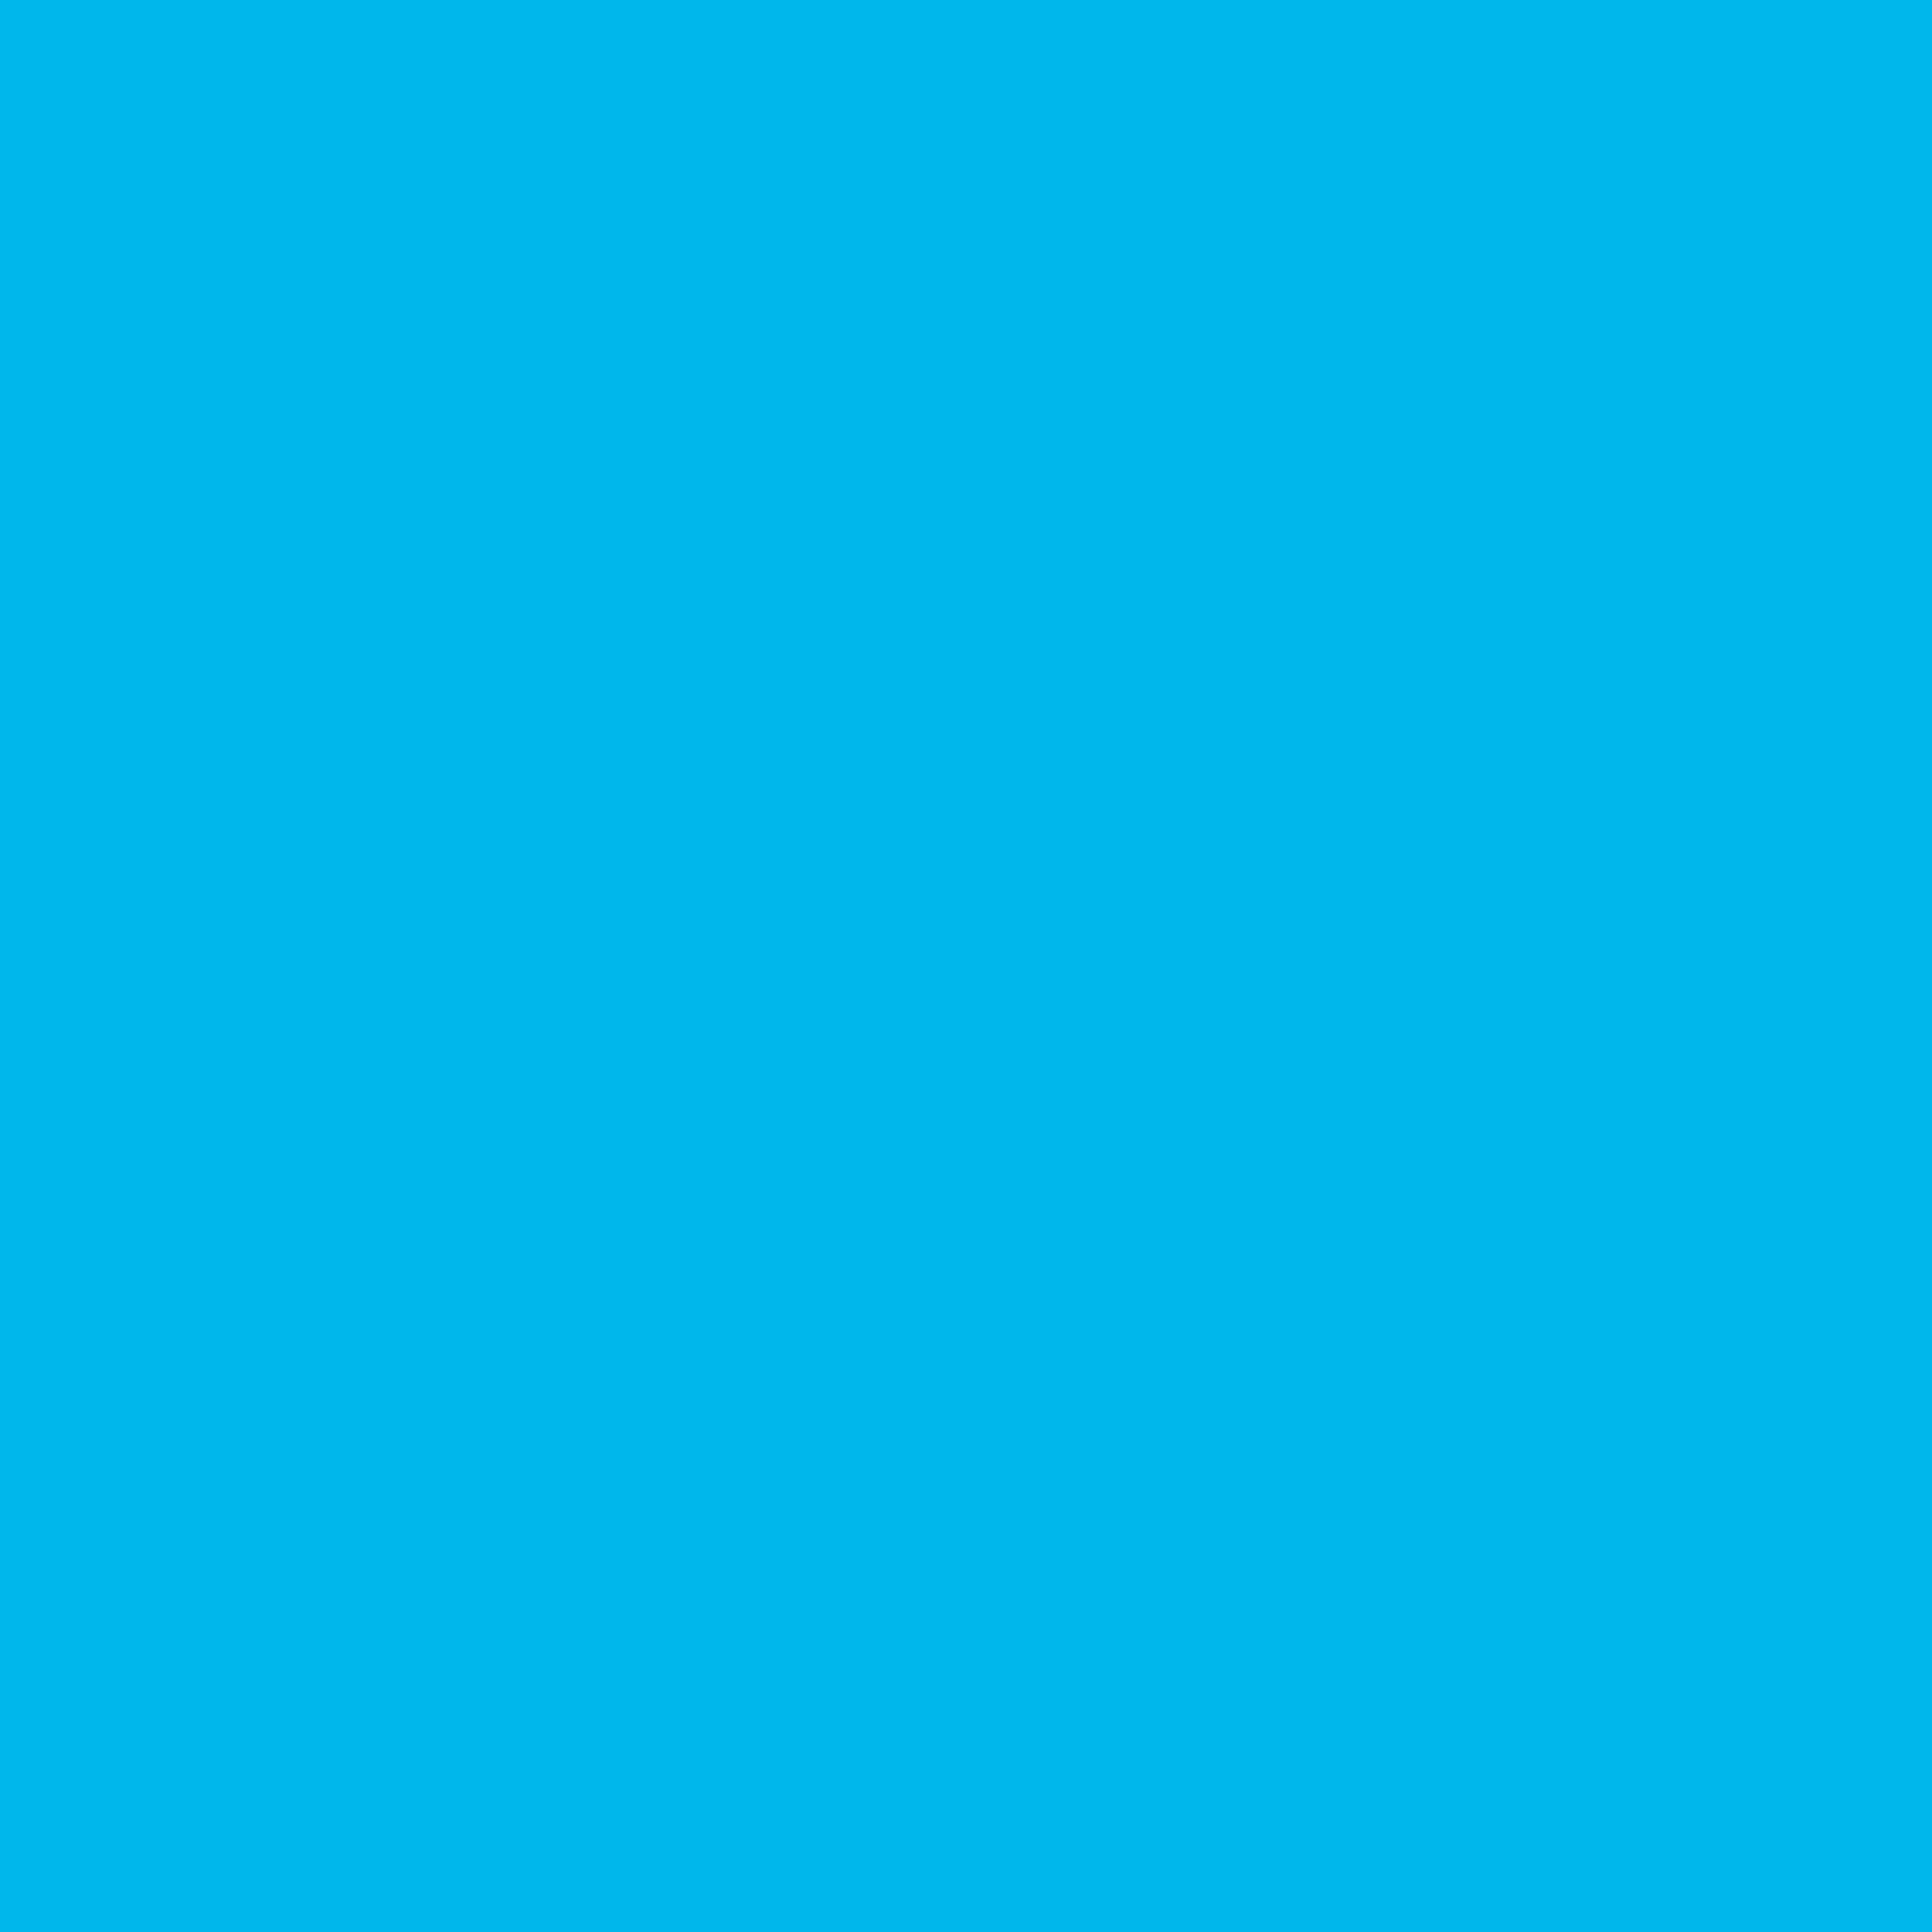 2048x2048 Cyan Process Solid Color Background